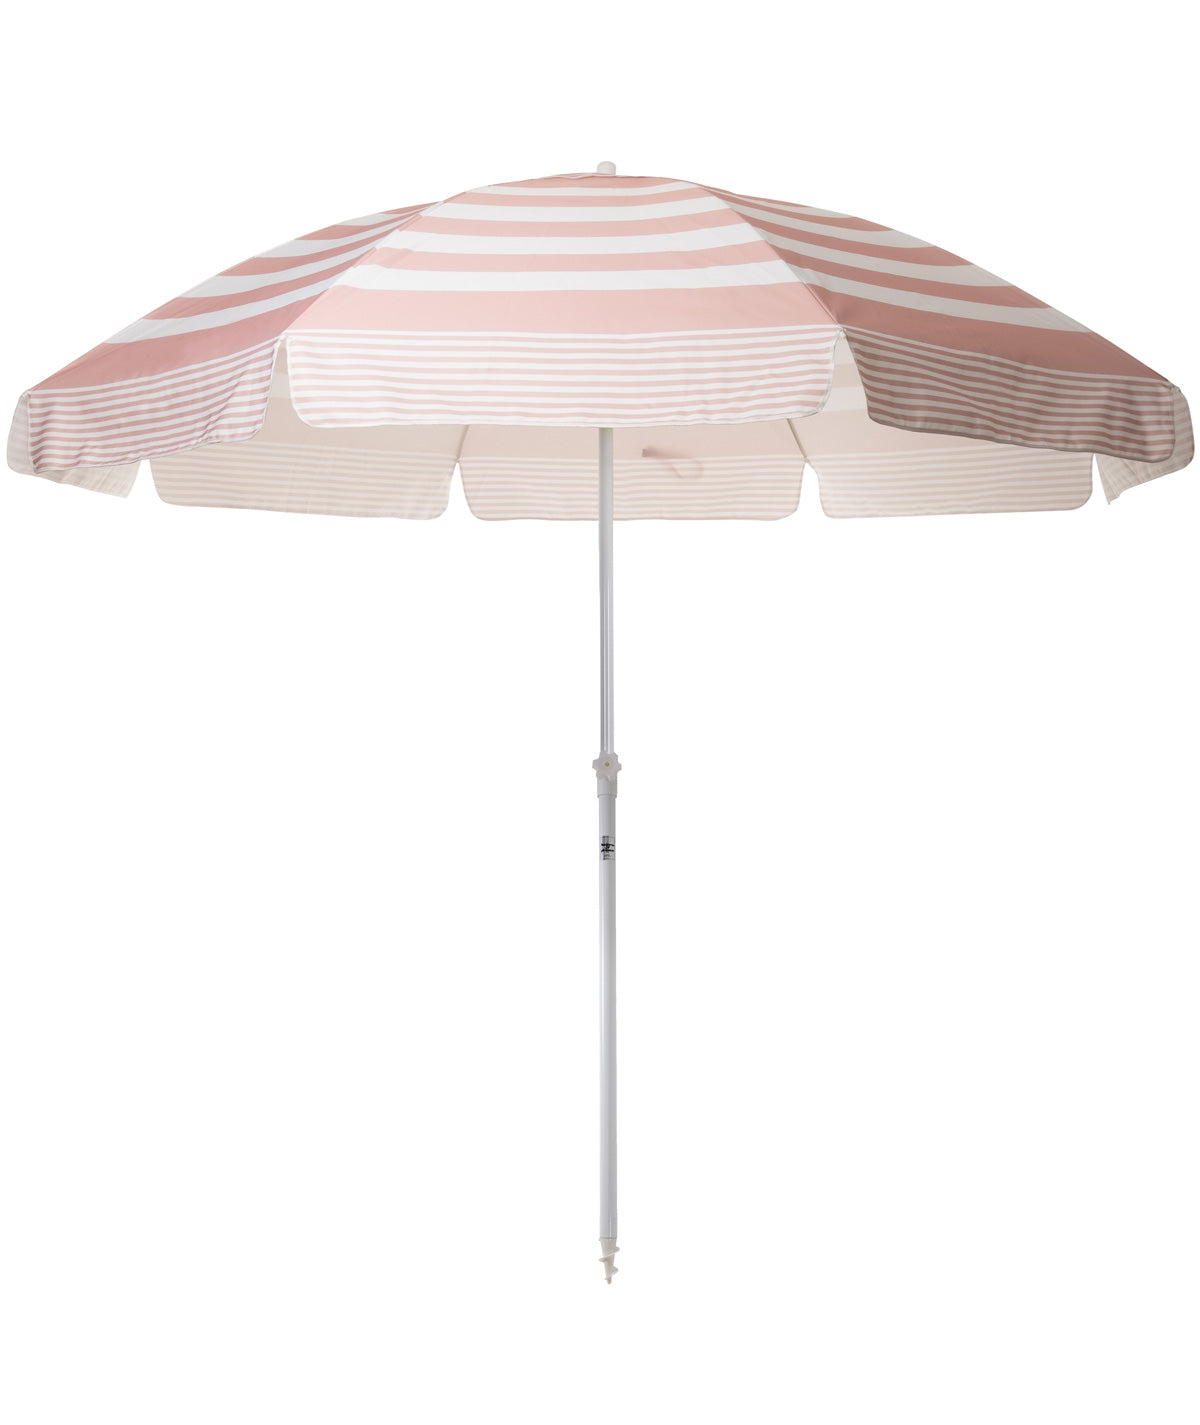 Pink Stripe Family XL Beach Umbrella - Business & Pleasure Co